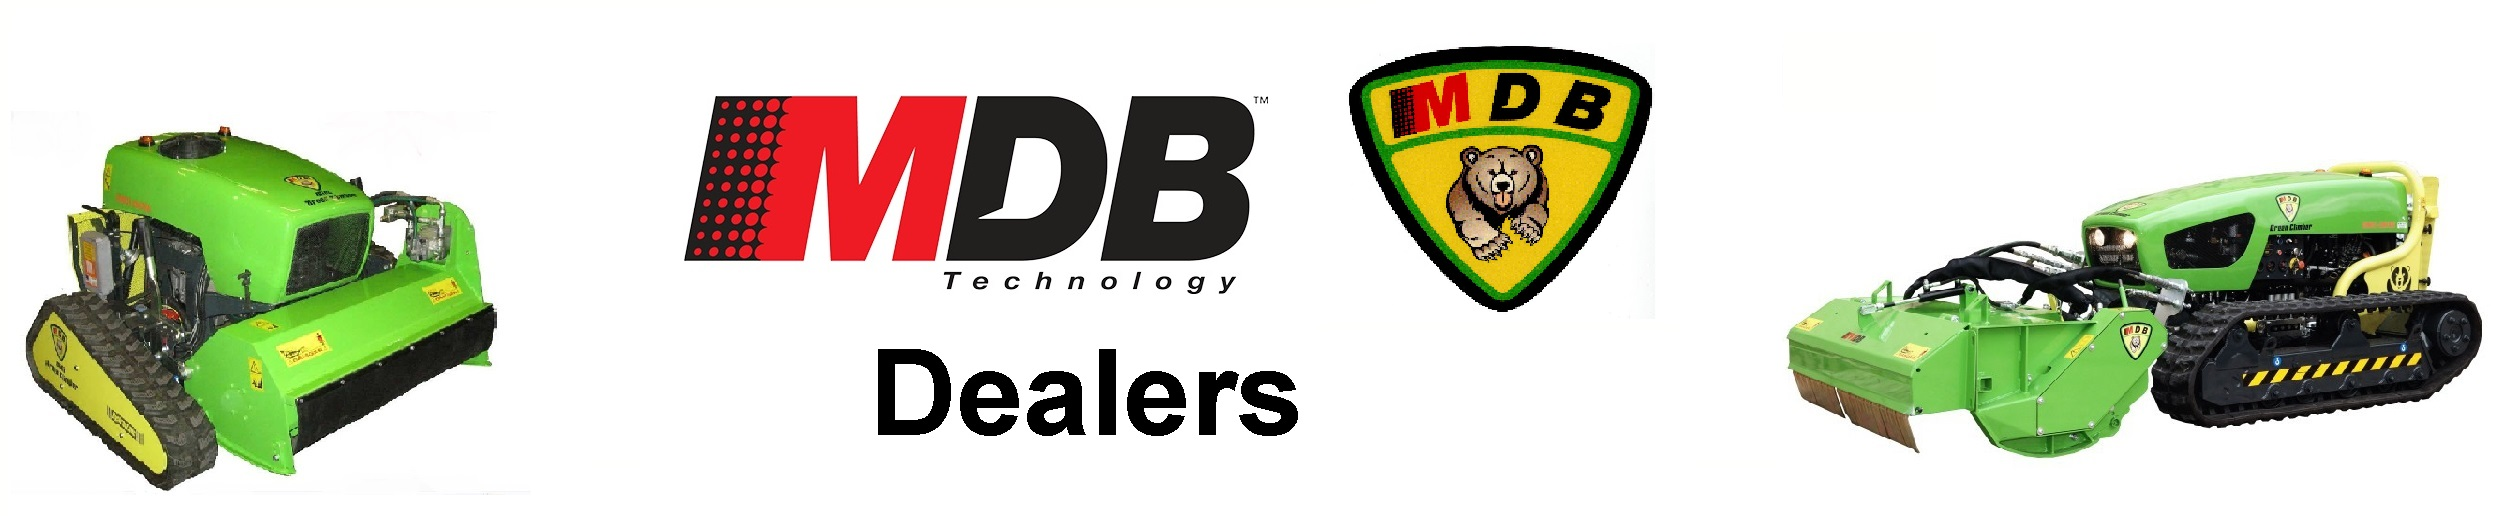 LOGO-01 +MDB Dealers